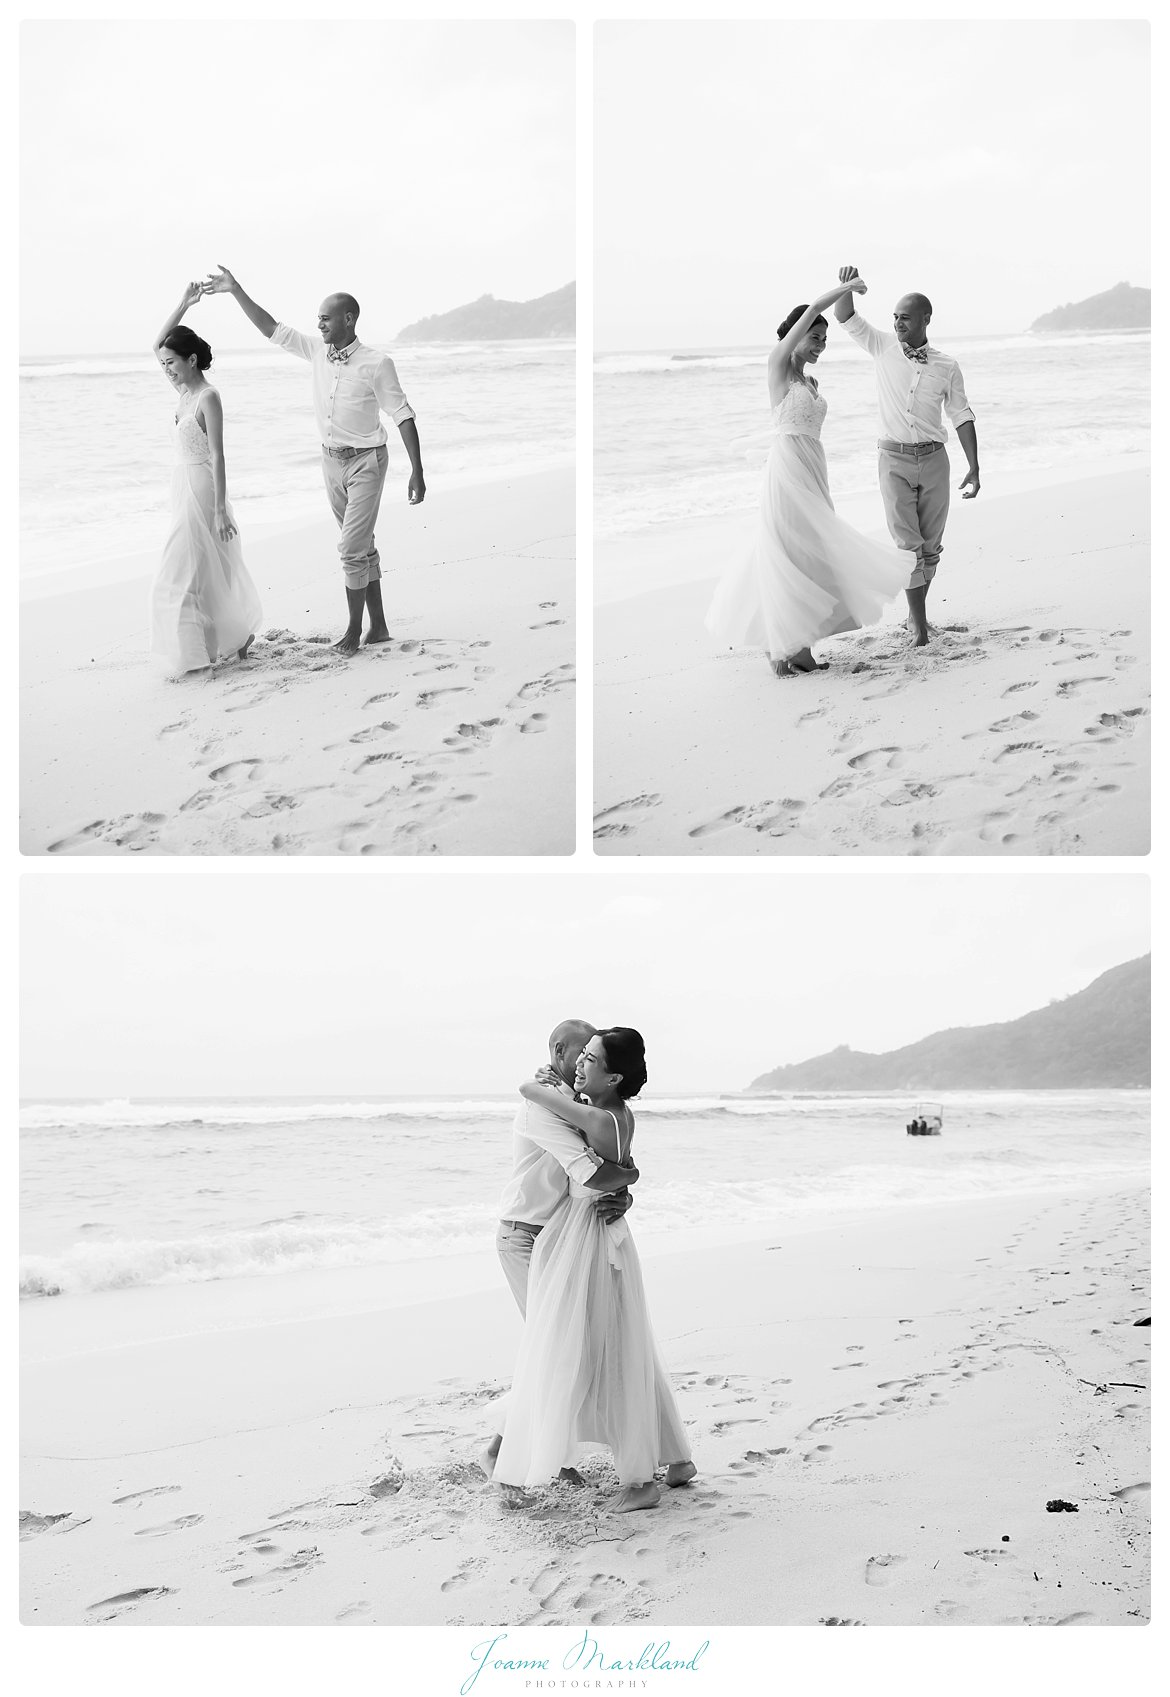 Joanne Markland Photography 187 Joanne Markland Is A Cape